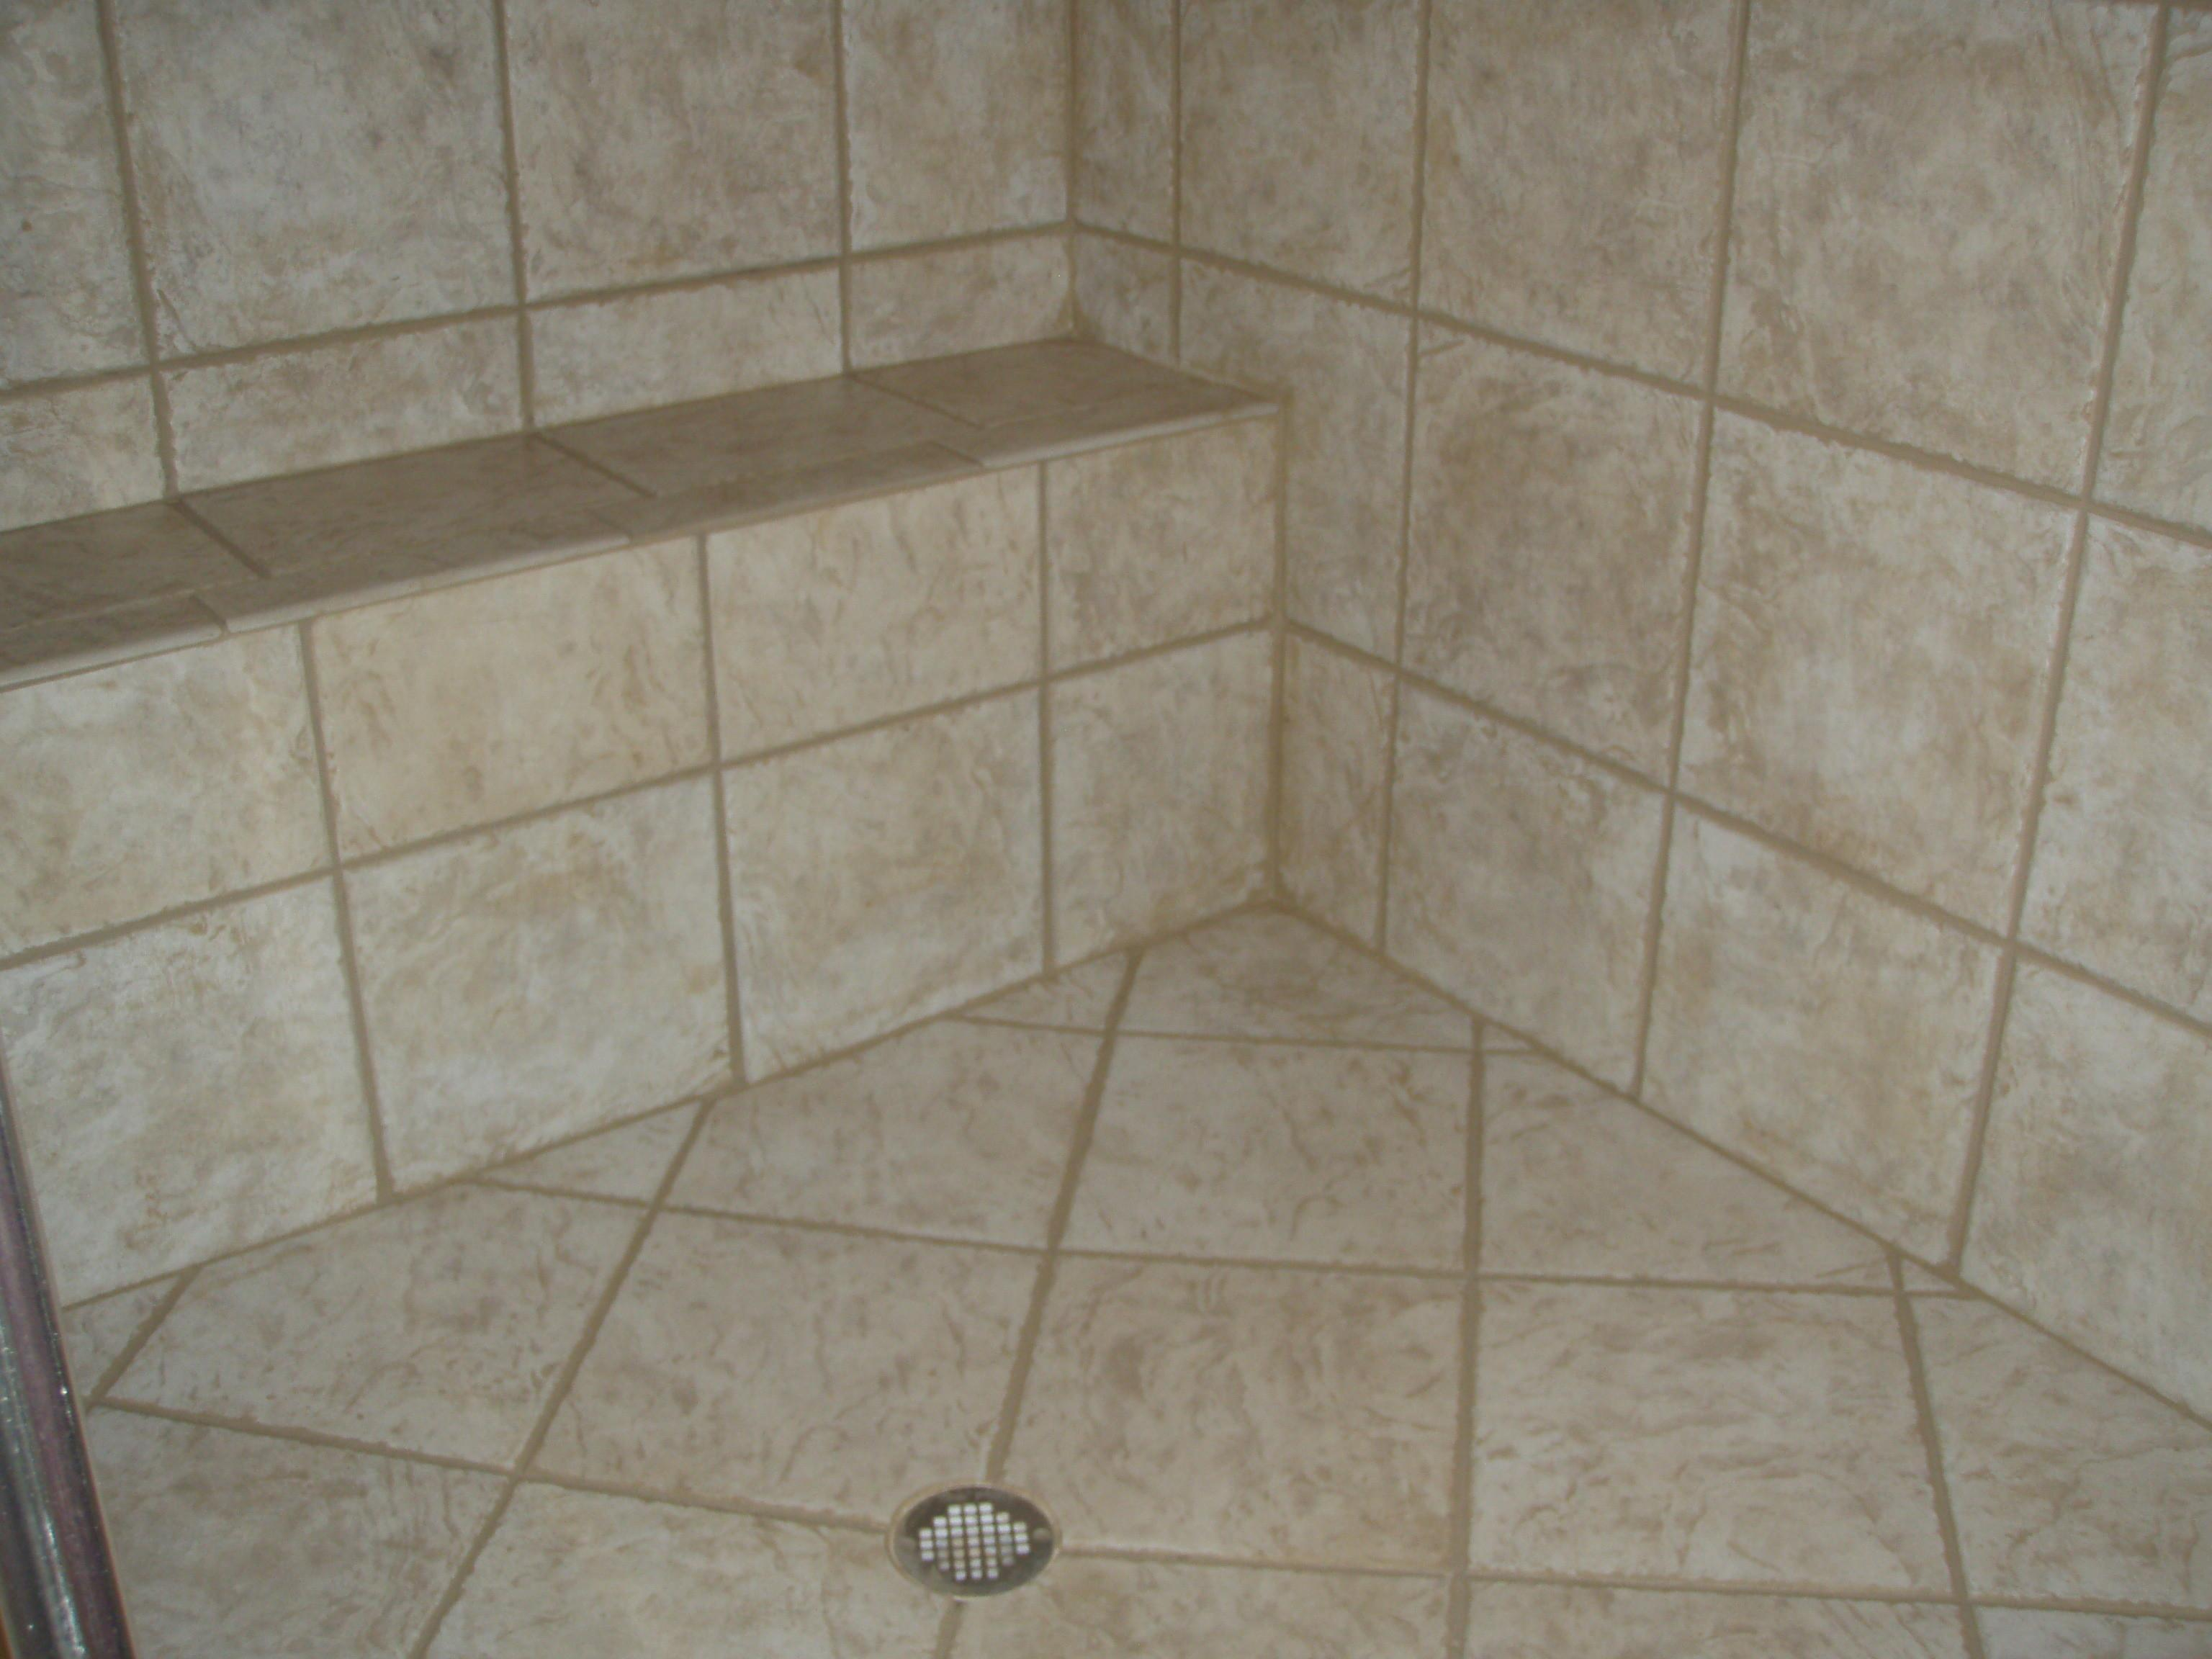 Clean Grout Tile Floor Cleaning